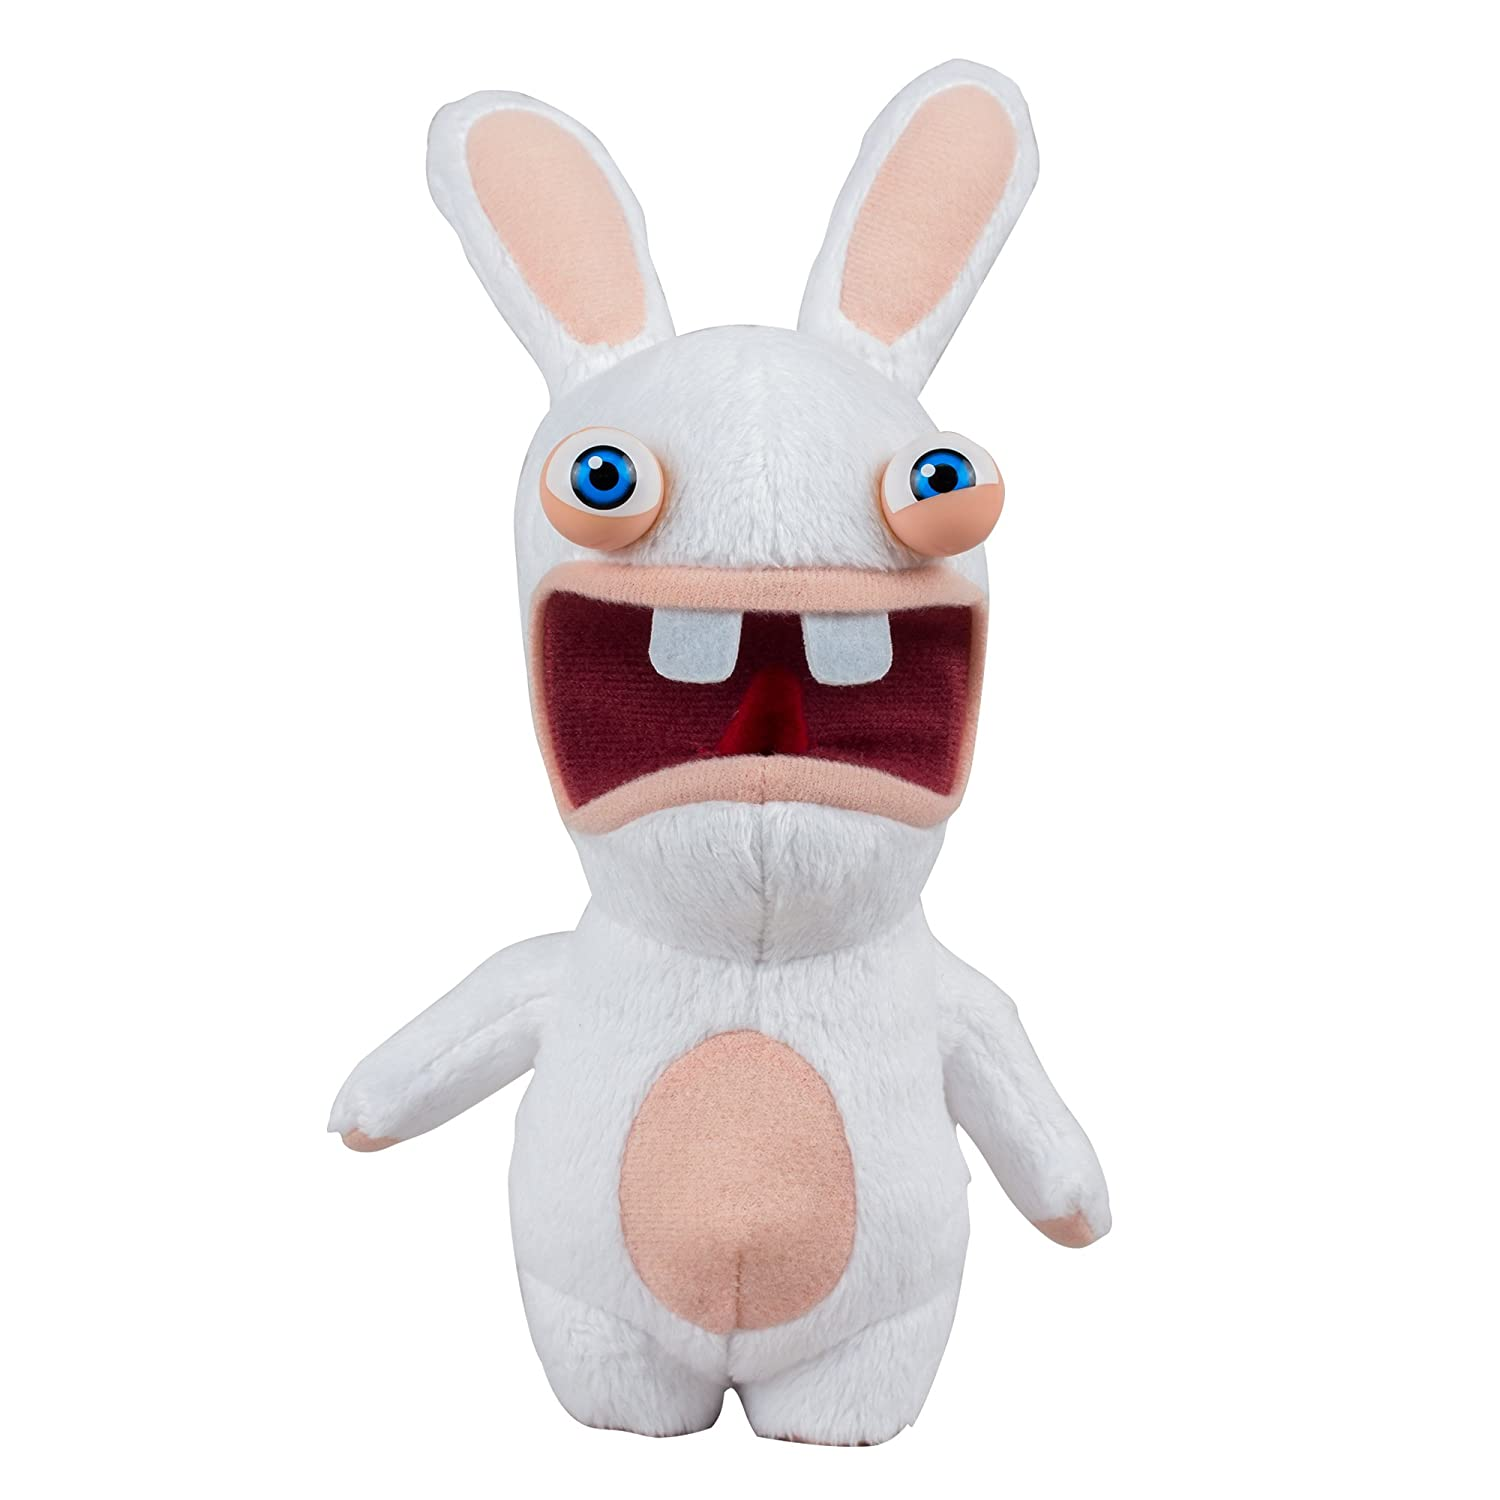 Amazon.com: McFarlane Toys Rabbids Series 1 Plush with Sound Raving Rabbid Figure: Toys & Games